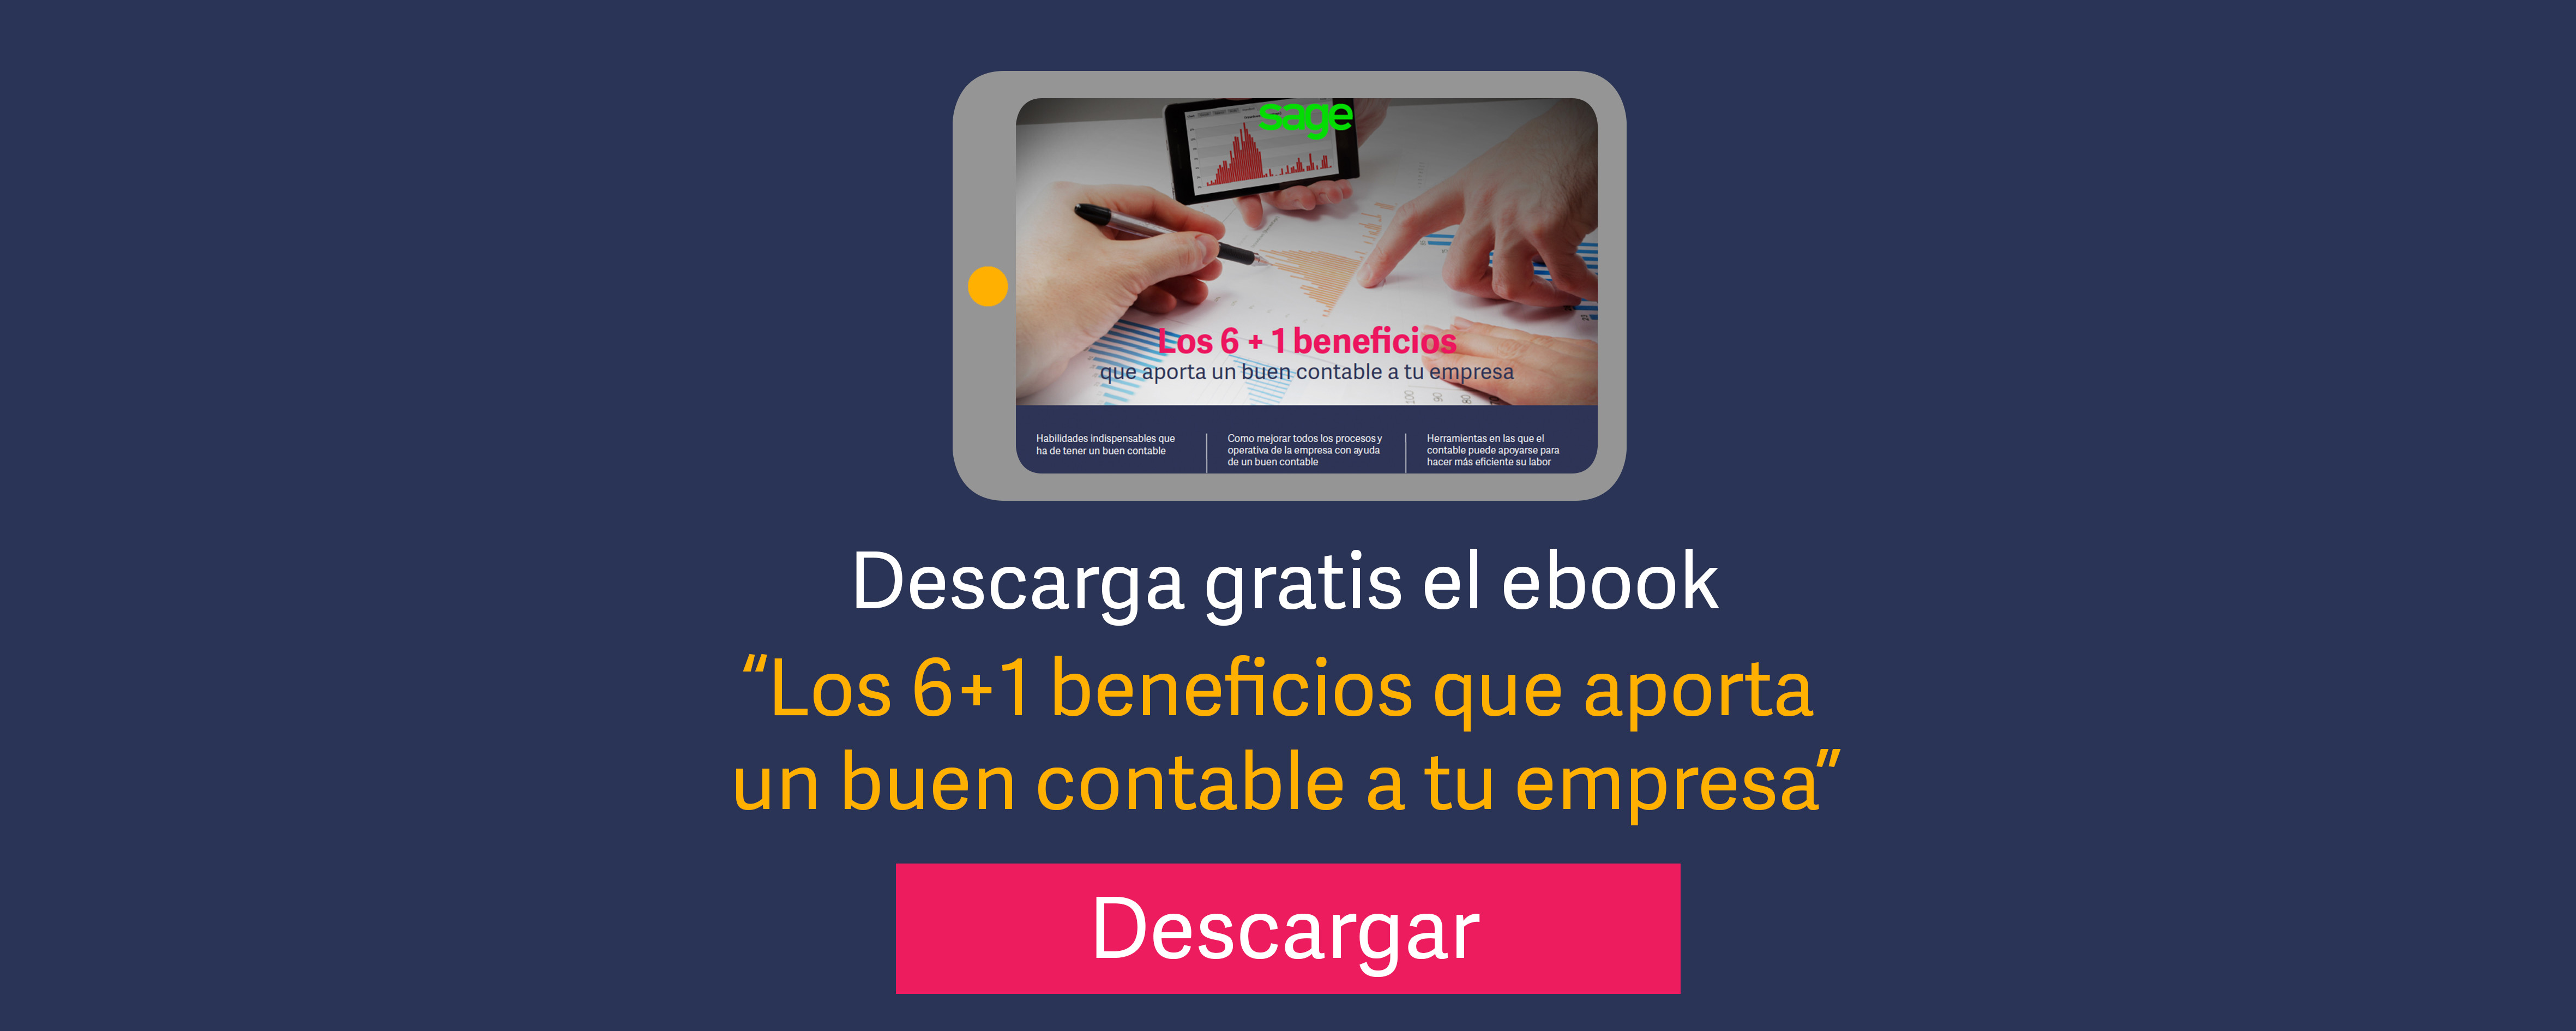 Inpost_ebook_6+1 beneficios buen contable